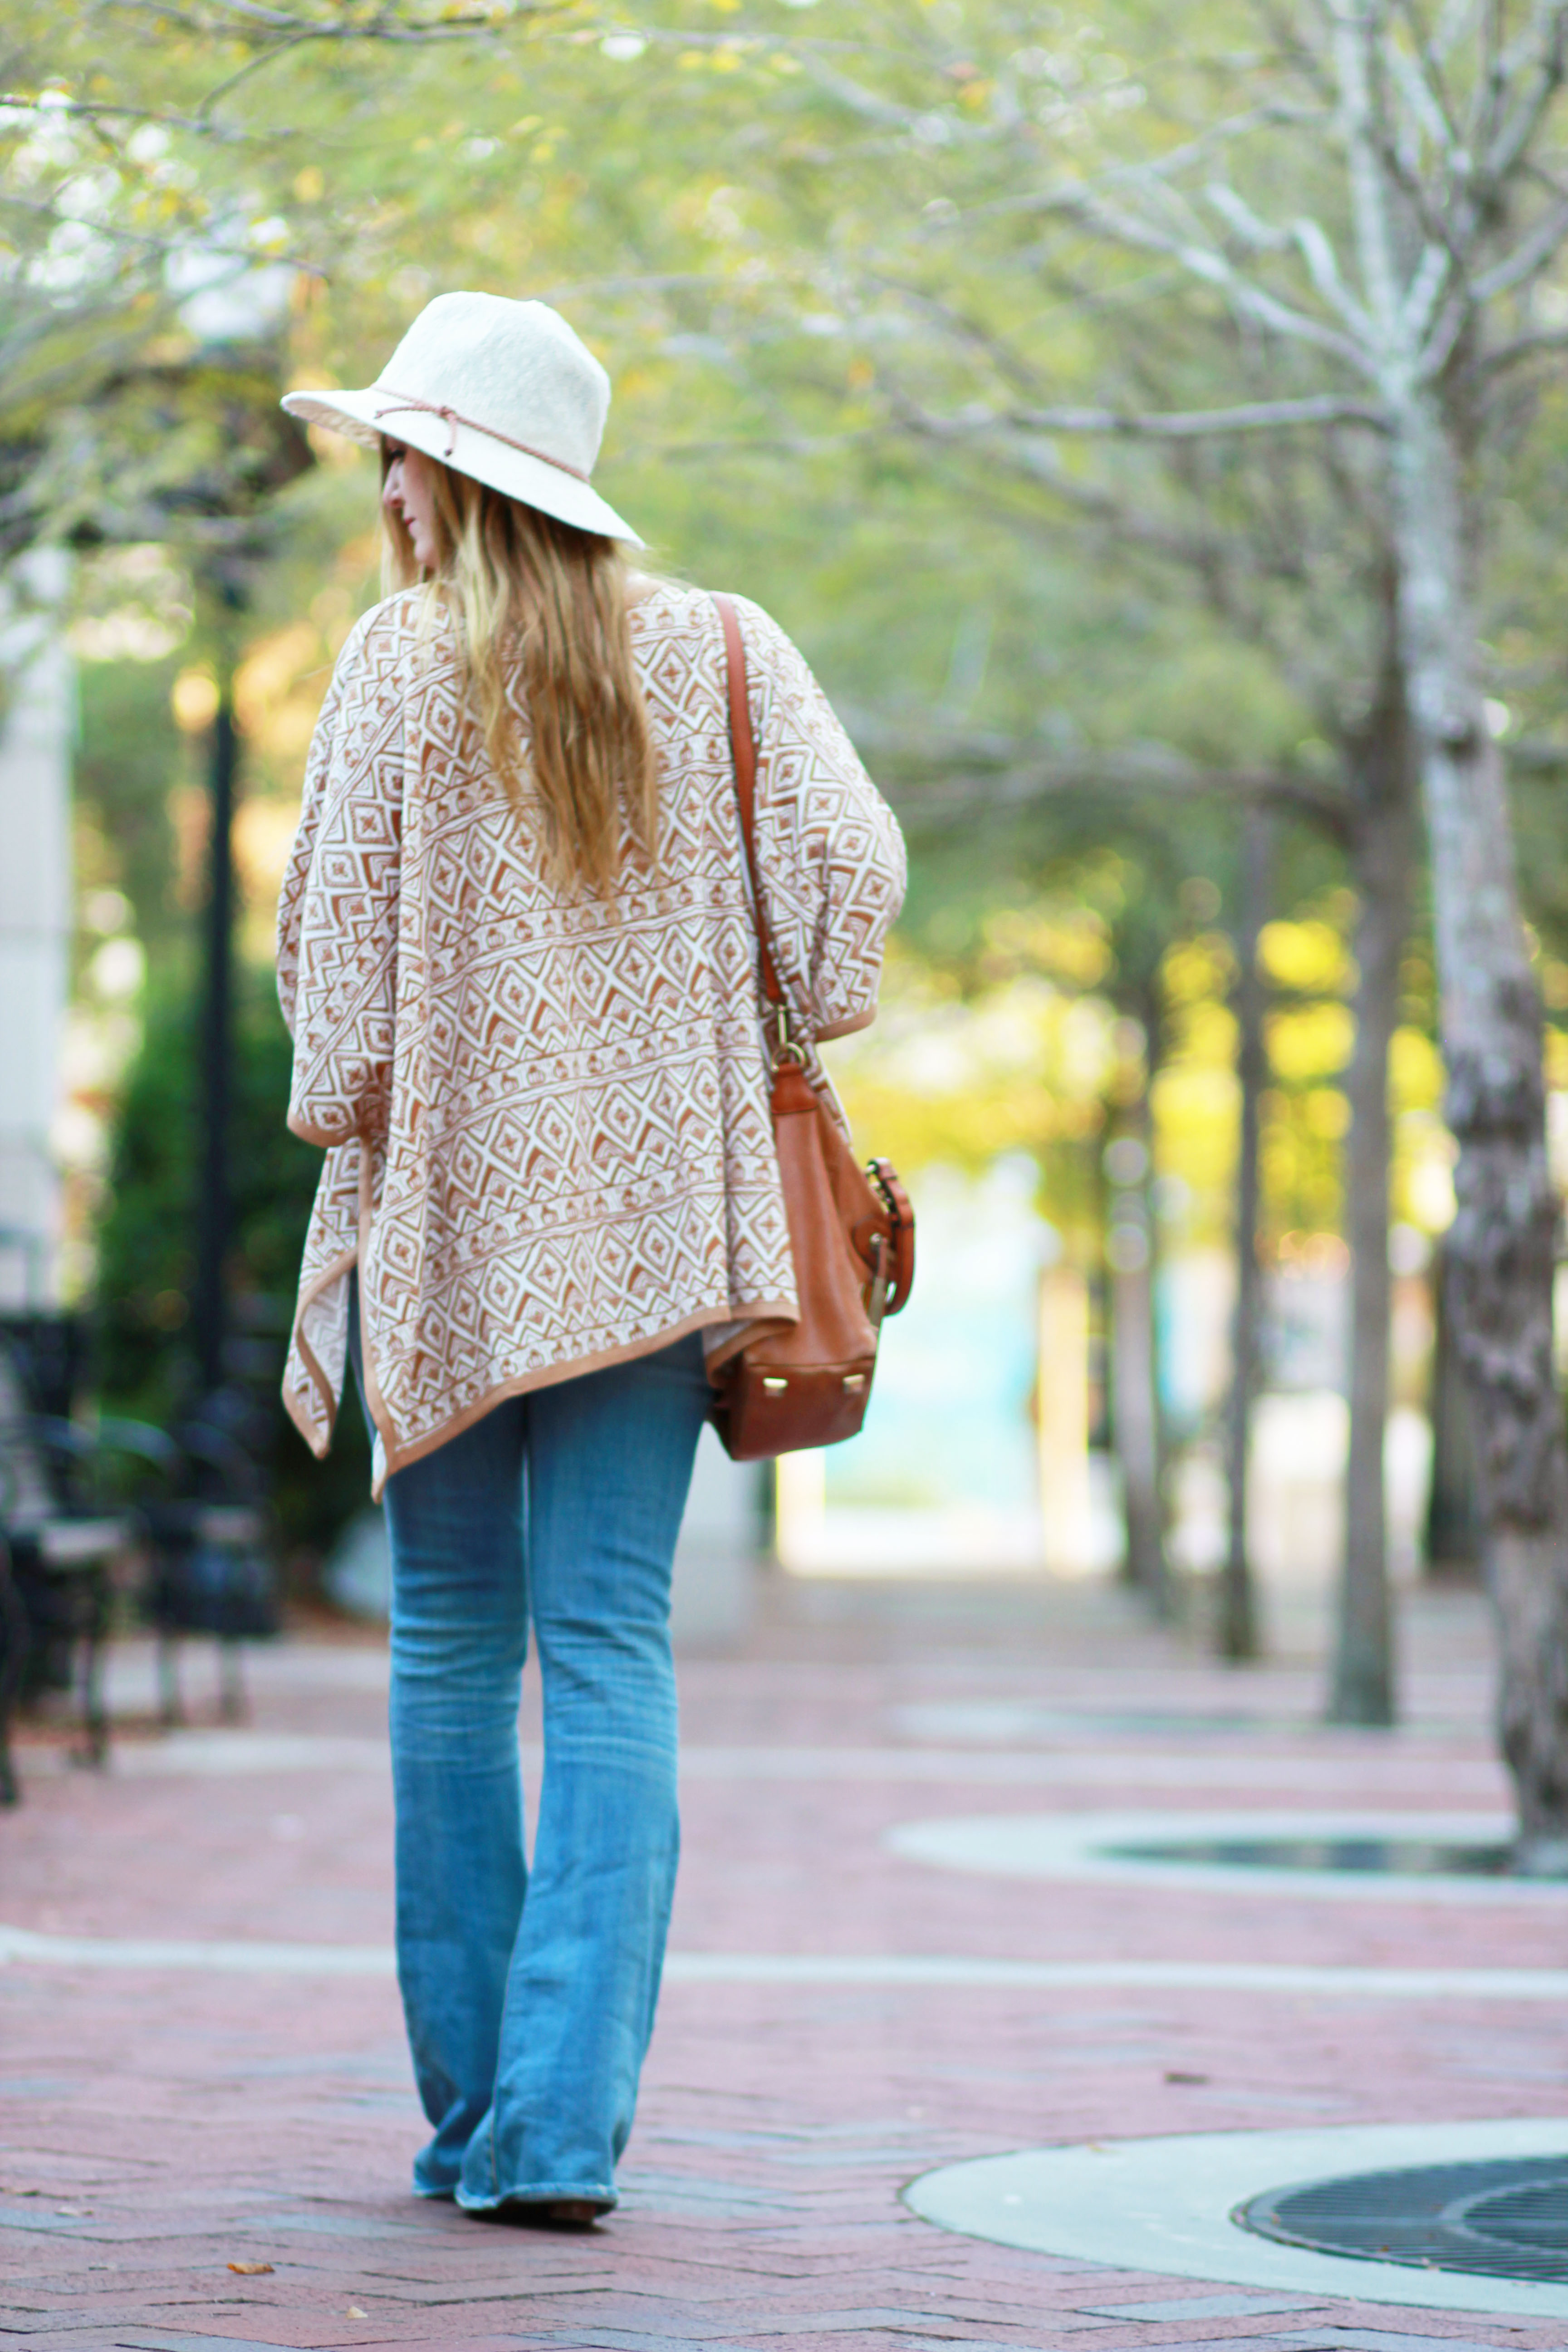 florida fashion blogger styles sugar love boutique tribal cardigan with american eagle flared jeans, Michael kors purse, and dsw booties for a boho chic outfit